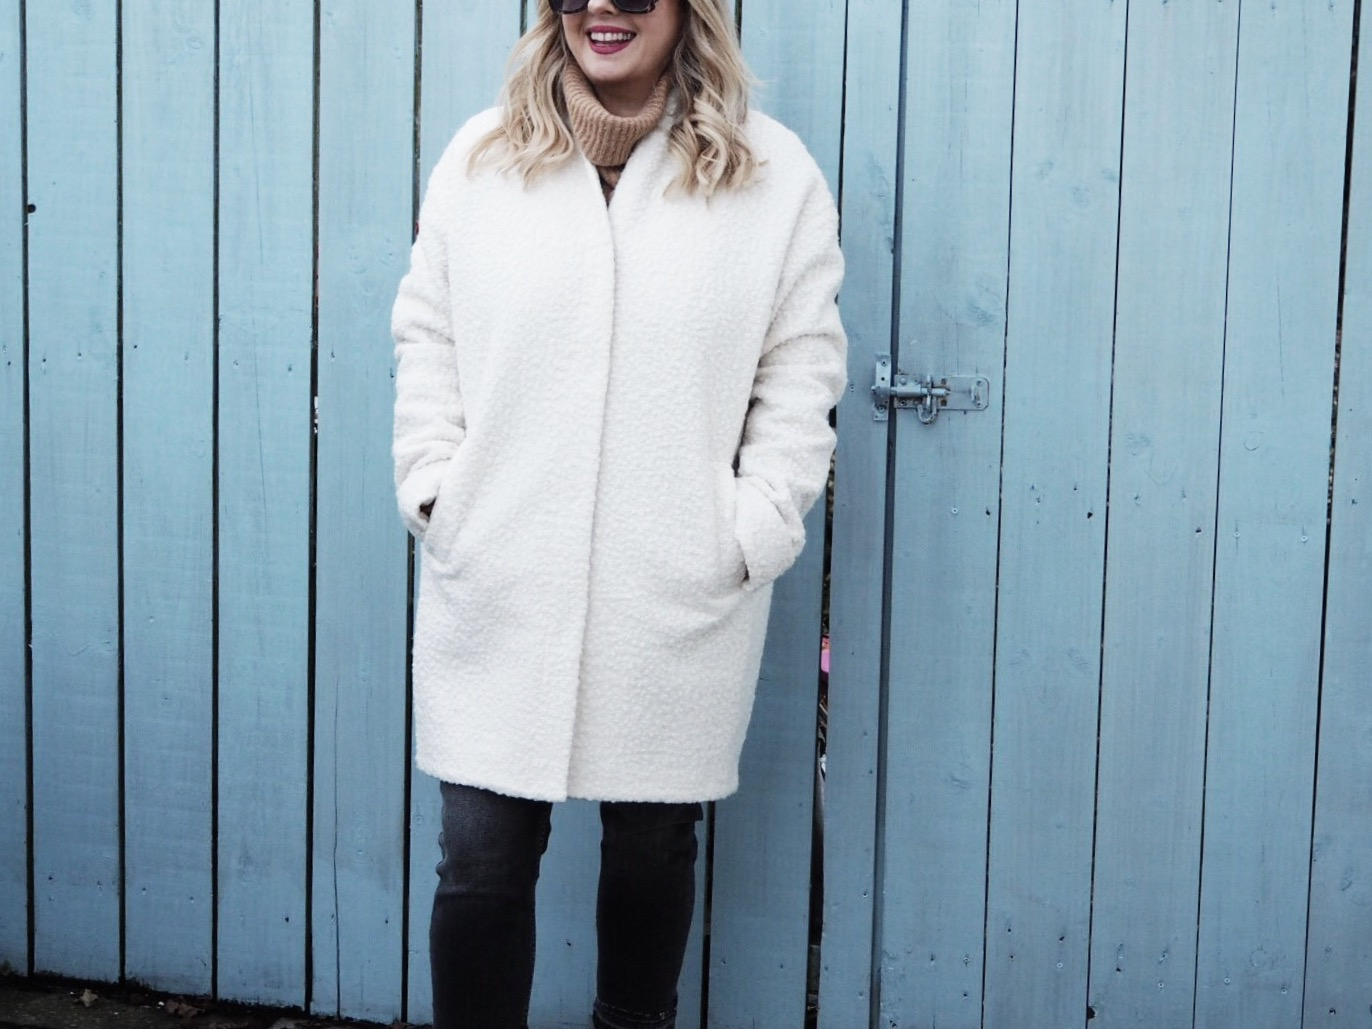 The Perfect Winter Coat? My Top Picks